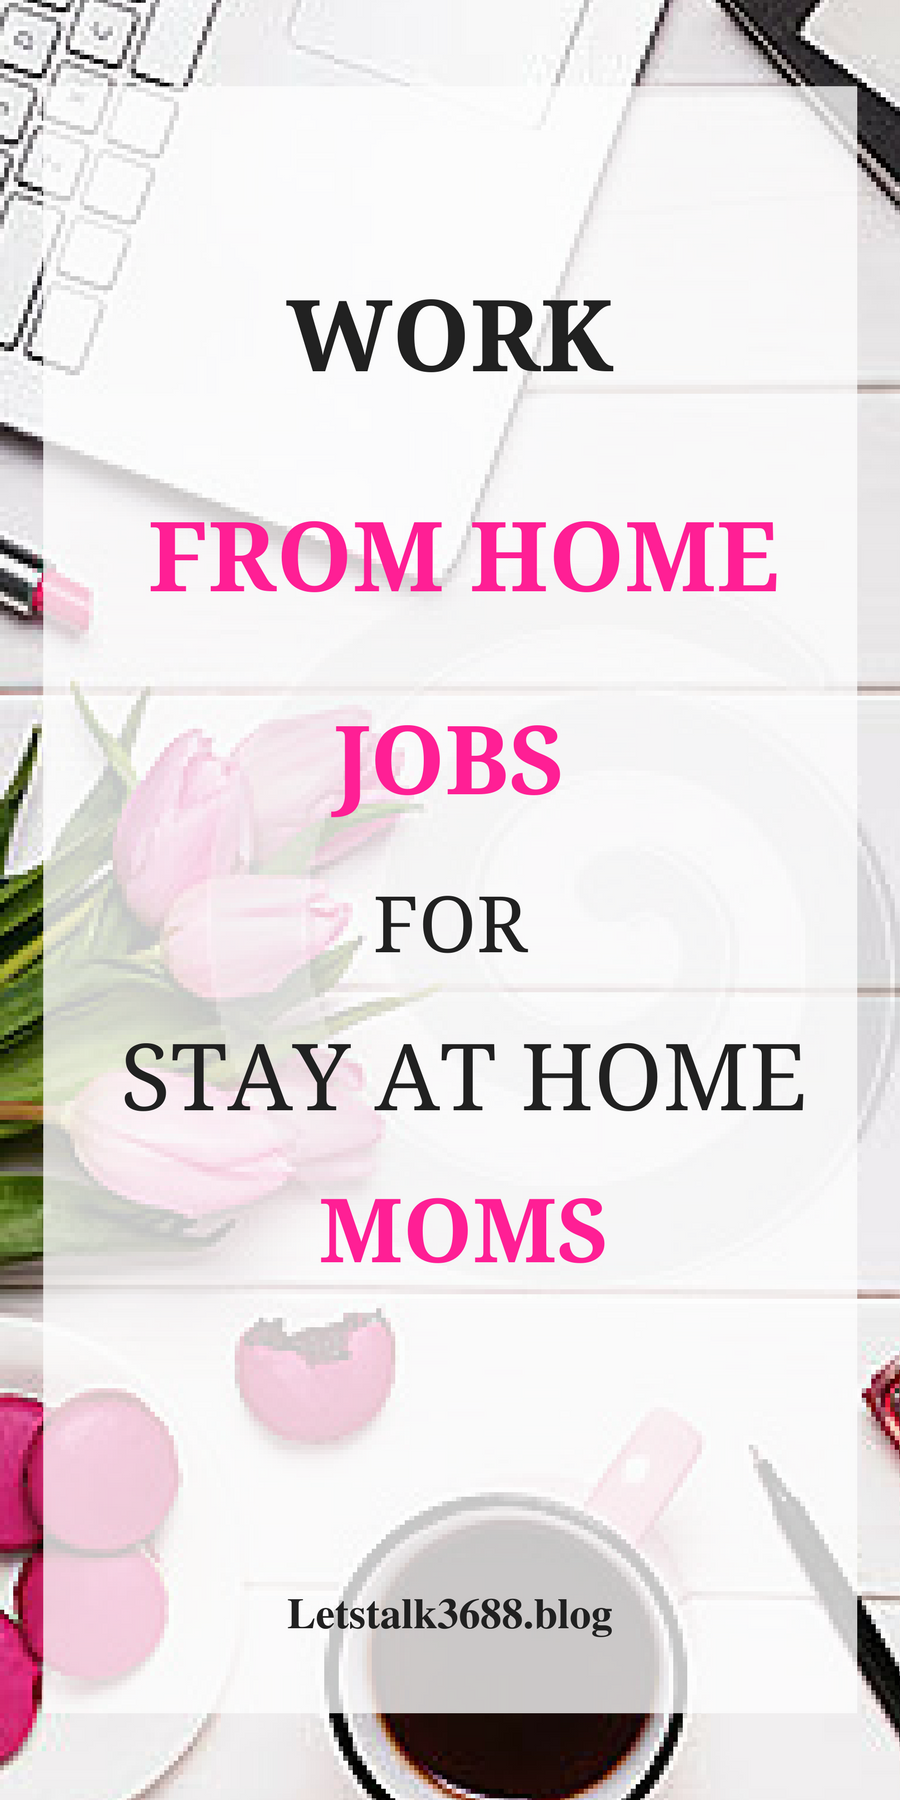 Jobs for stay at home moms. Companies that offer telecommuting jobs ...